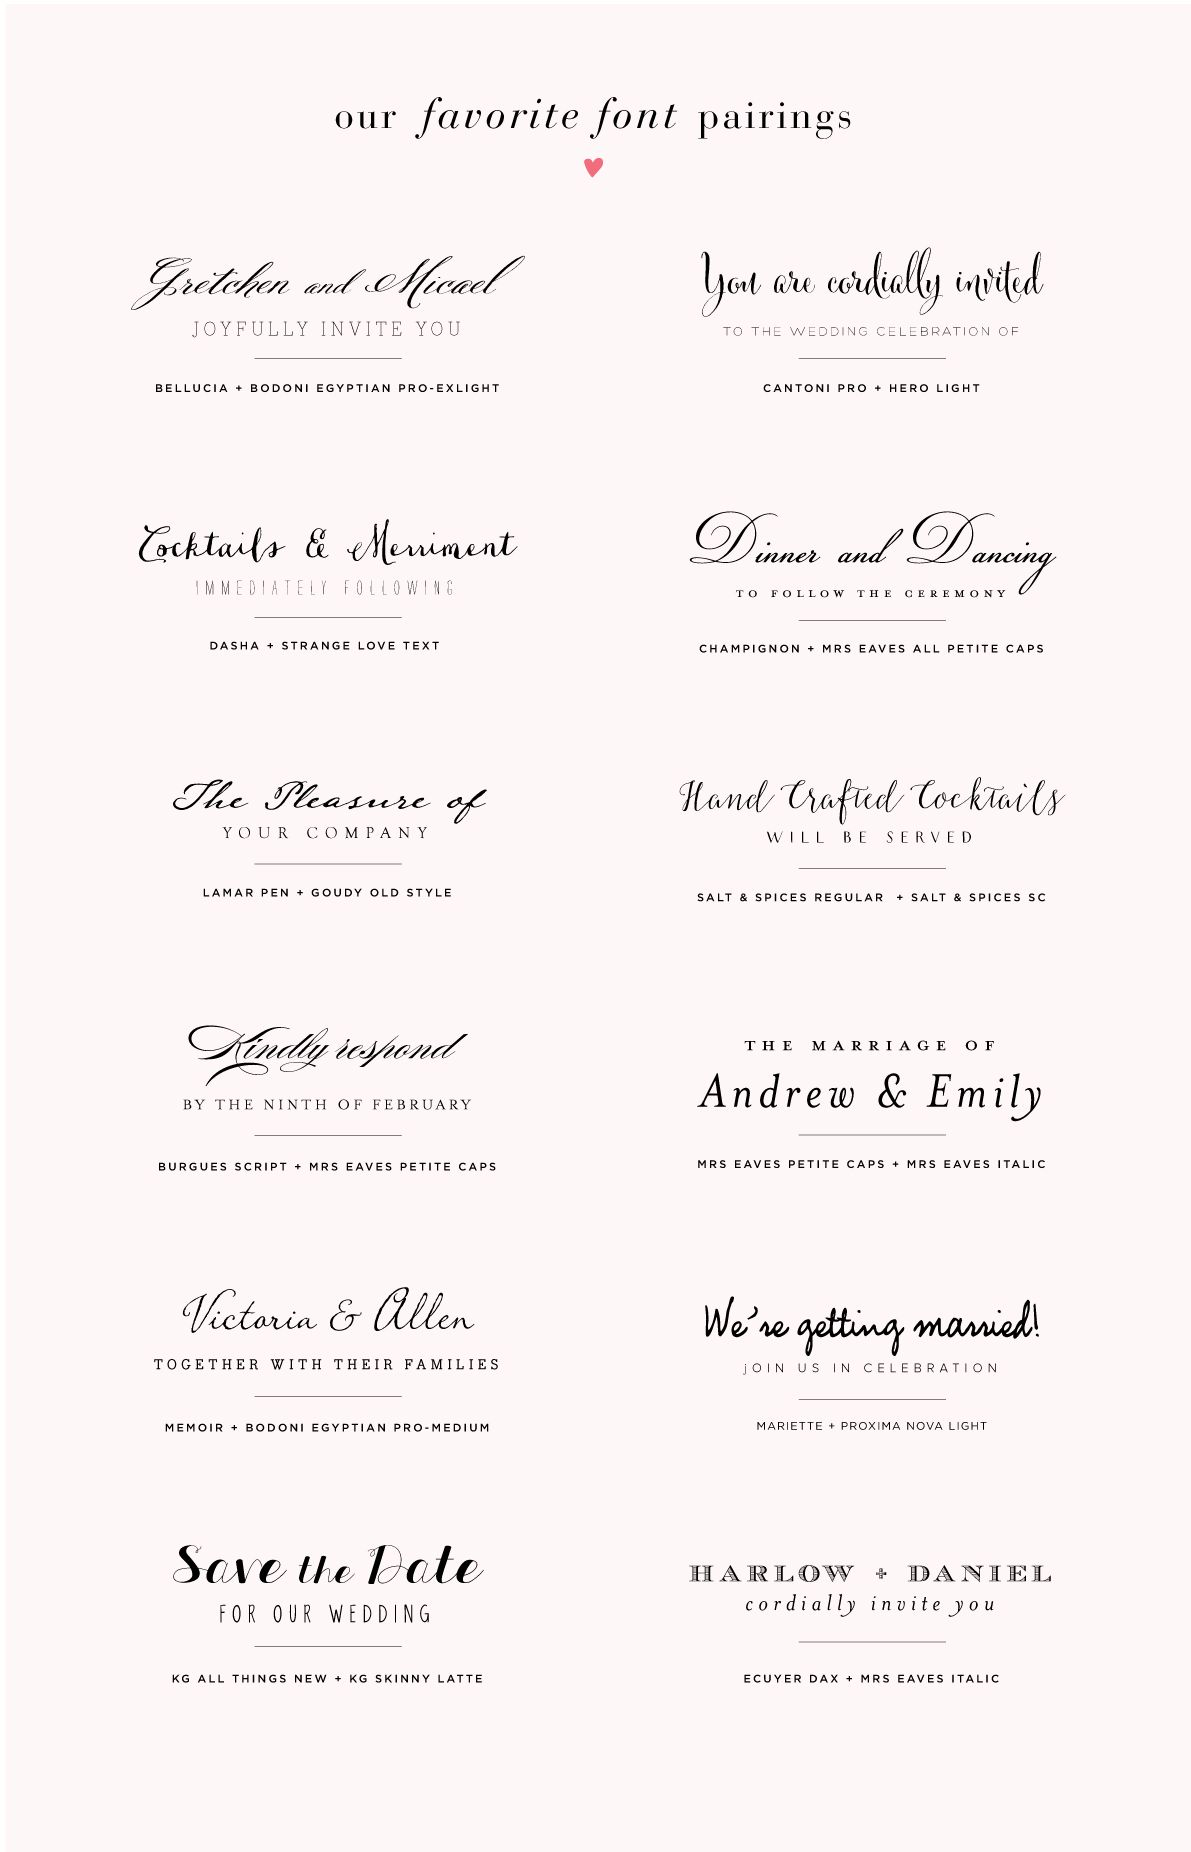 Font pairings for wedding invitations Wedding invitation